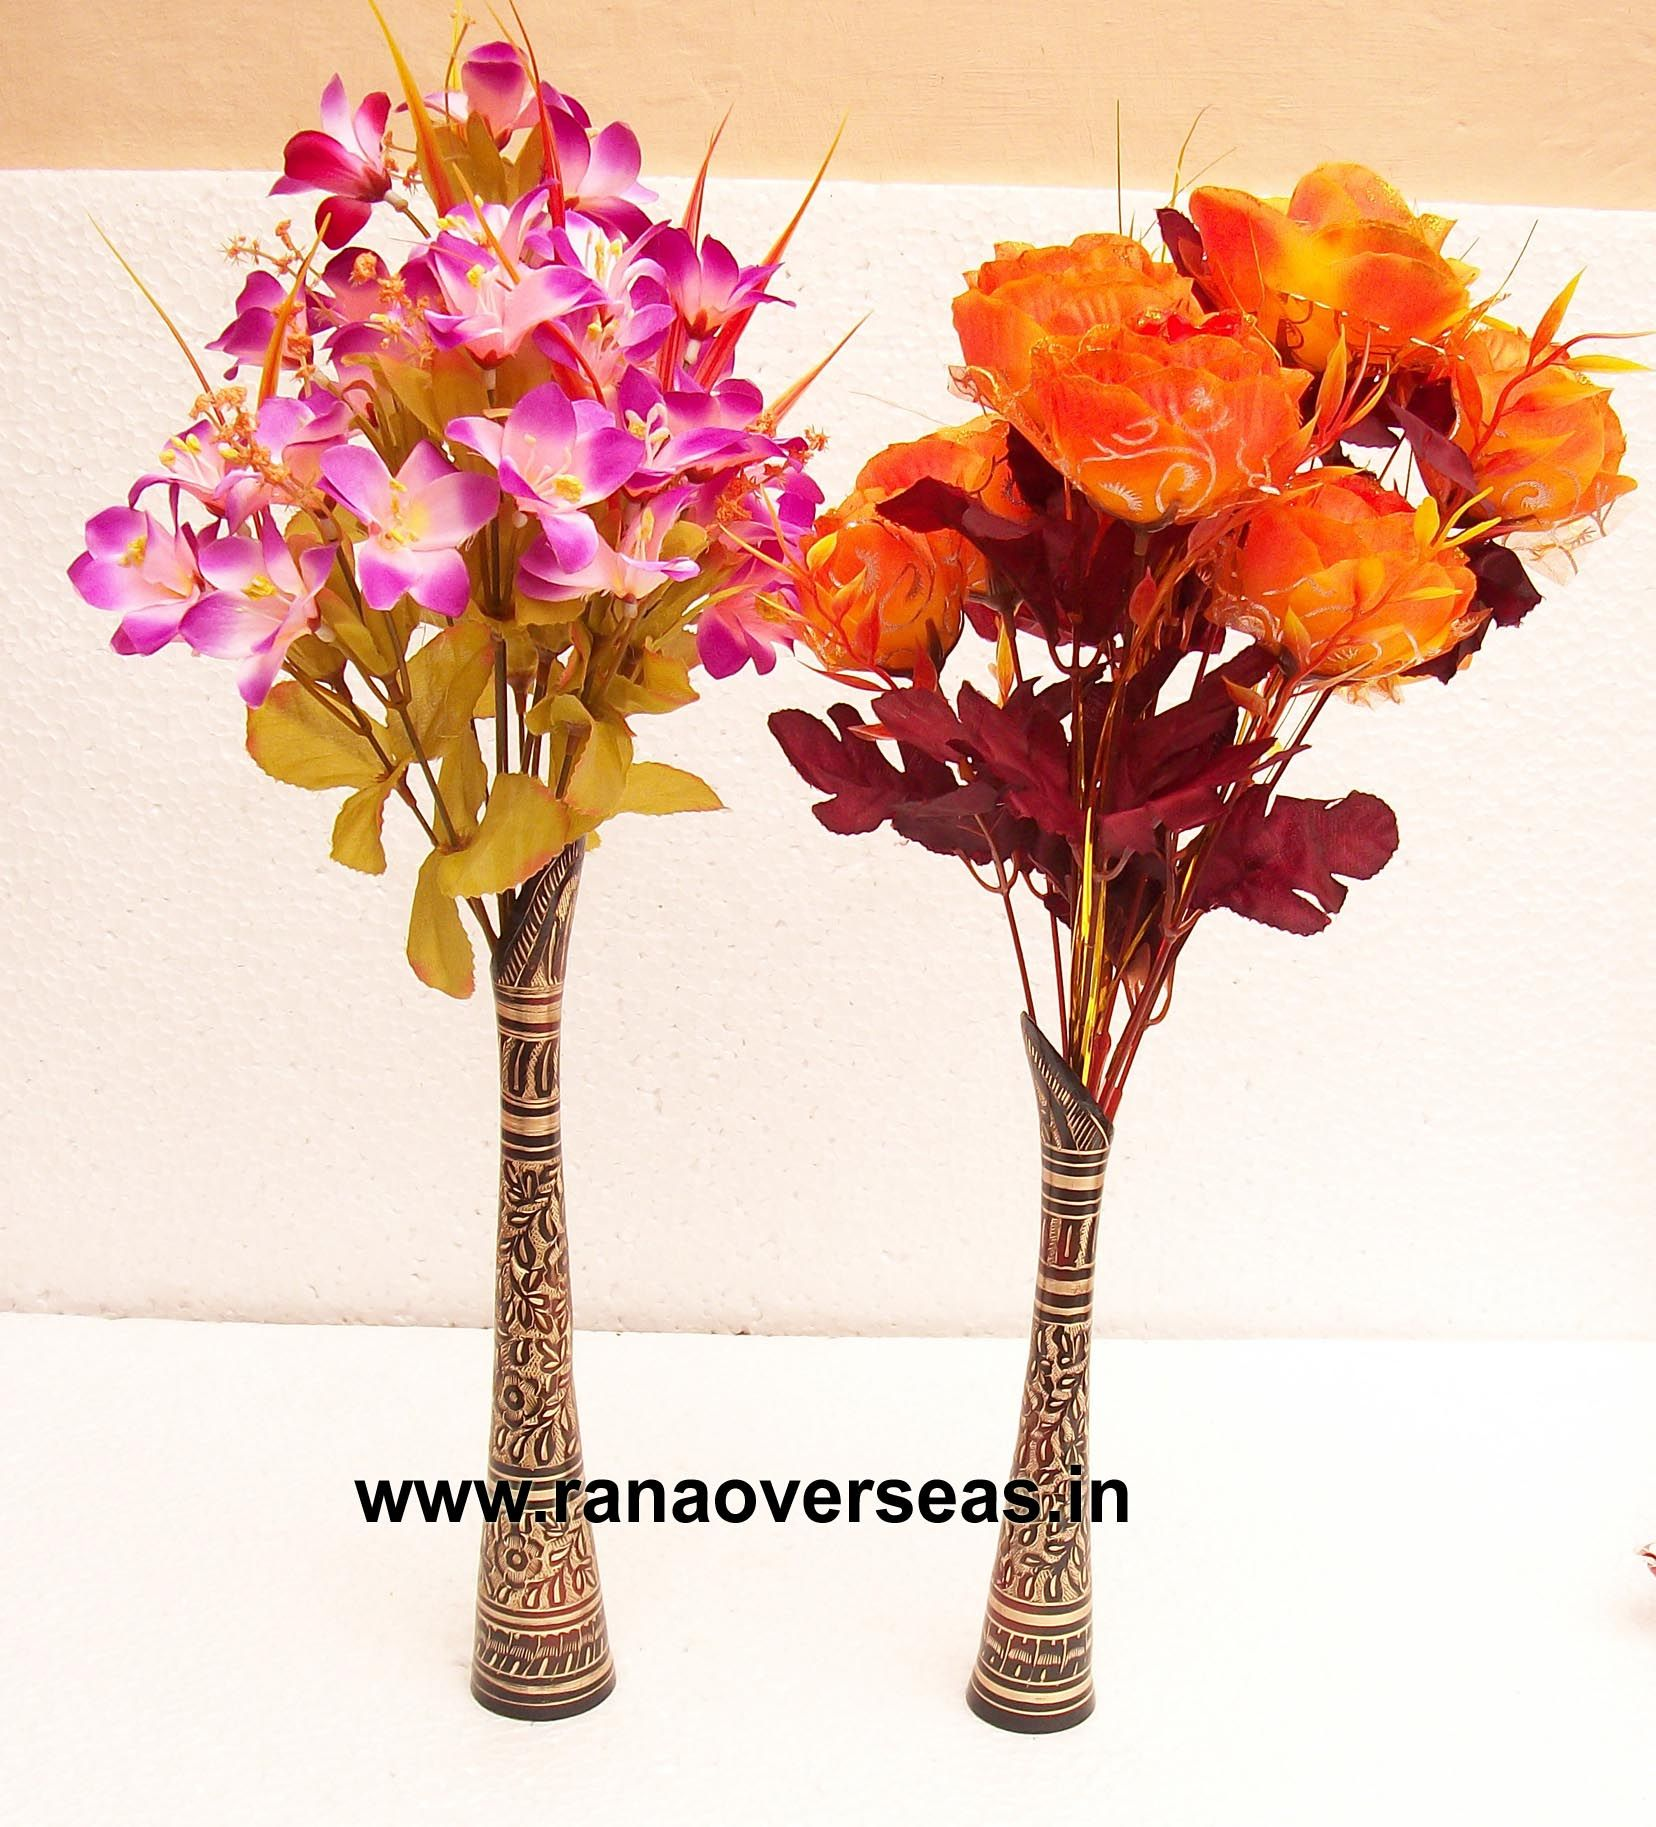 stock flowers crystal of image photos variety colorful fp vases vase